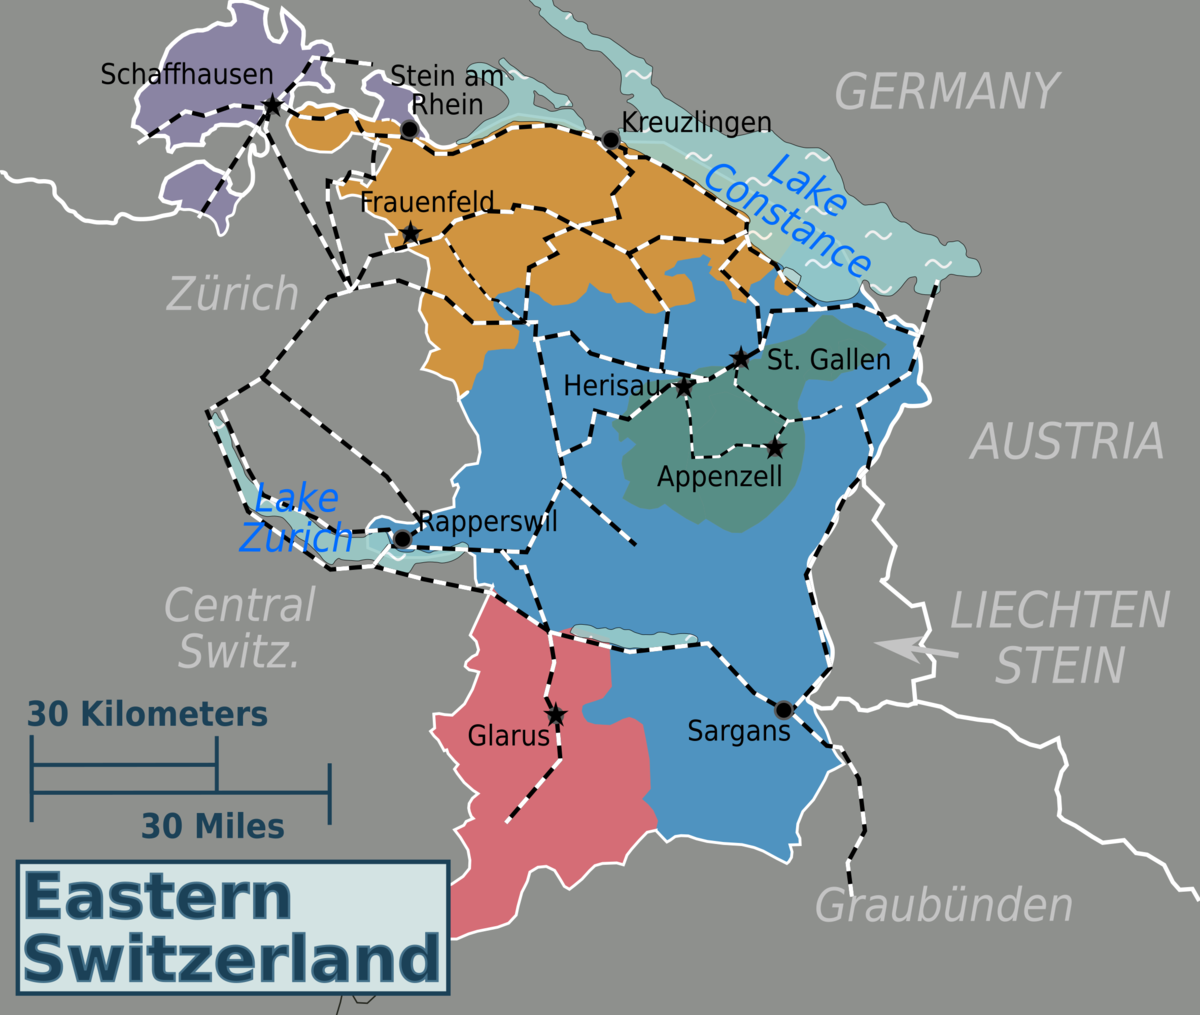 Eastern Switzerland Travel guide at Wikivoyage